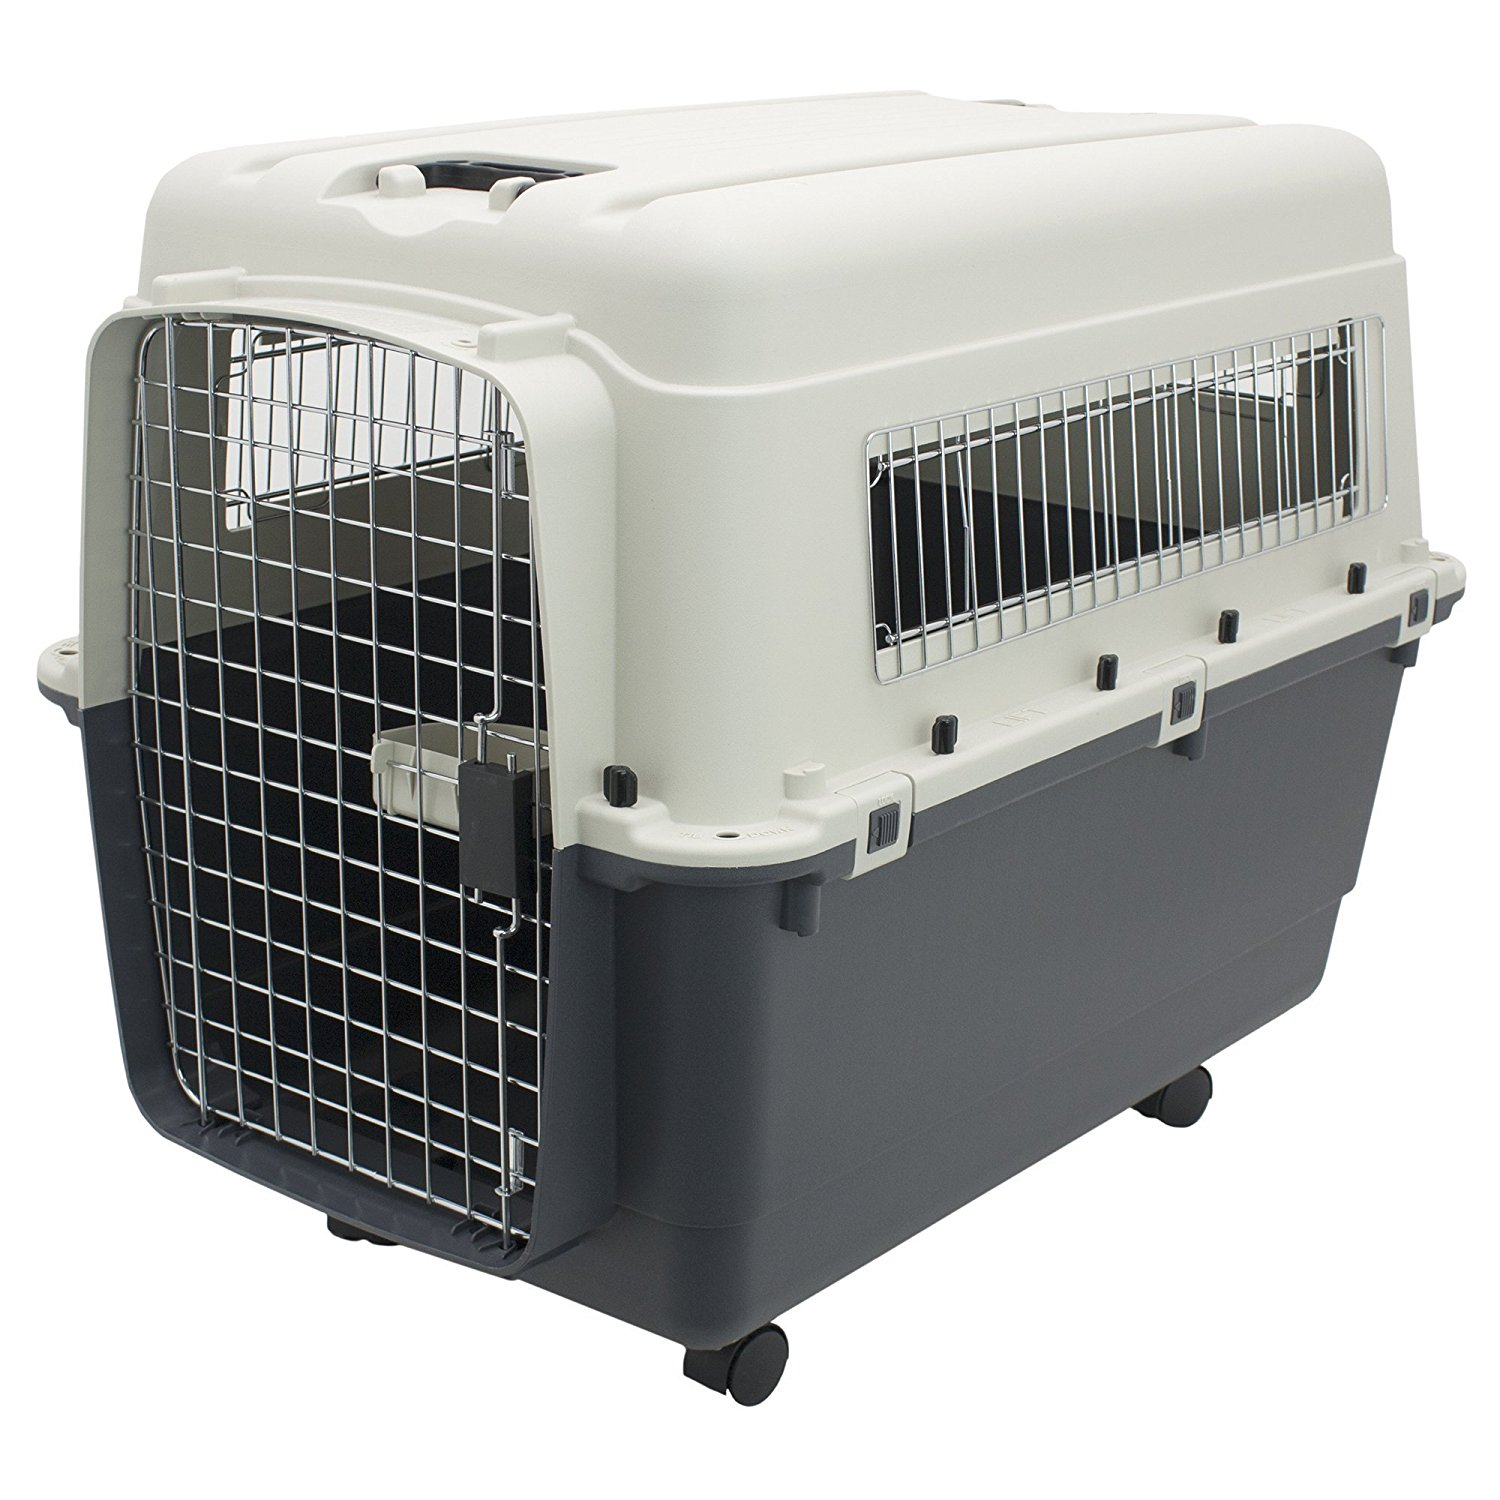 "Pet Kennel Direct 32"" Airline Approved Plastic Dog / Cat Pet Kennel Carrier or Air Travel with Chrome Door and Food / Water Cup and Wheels Foldable Dog Travel Crate"